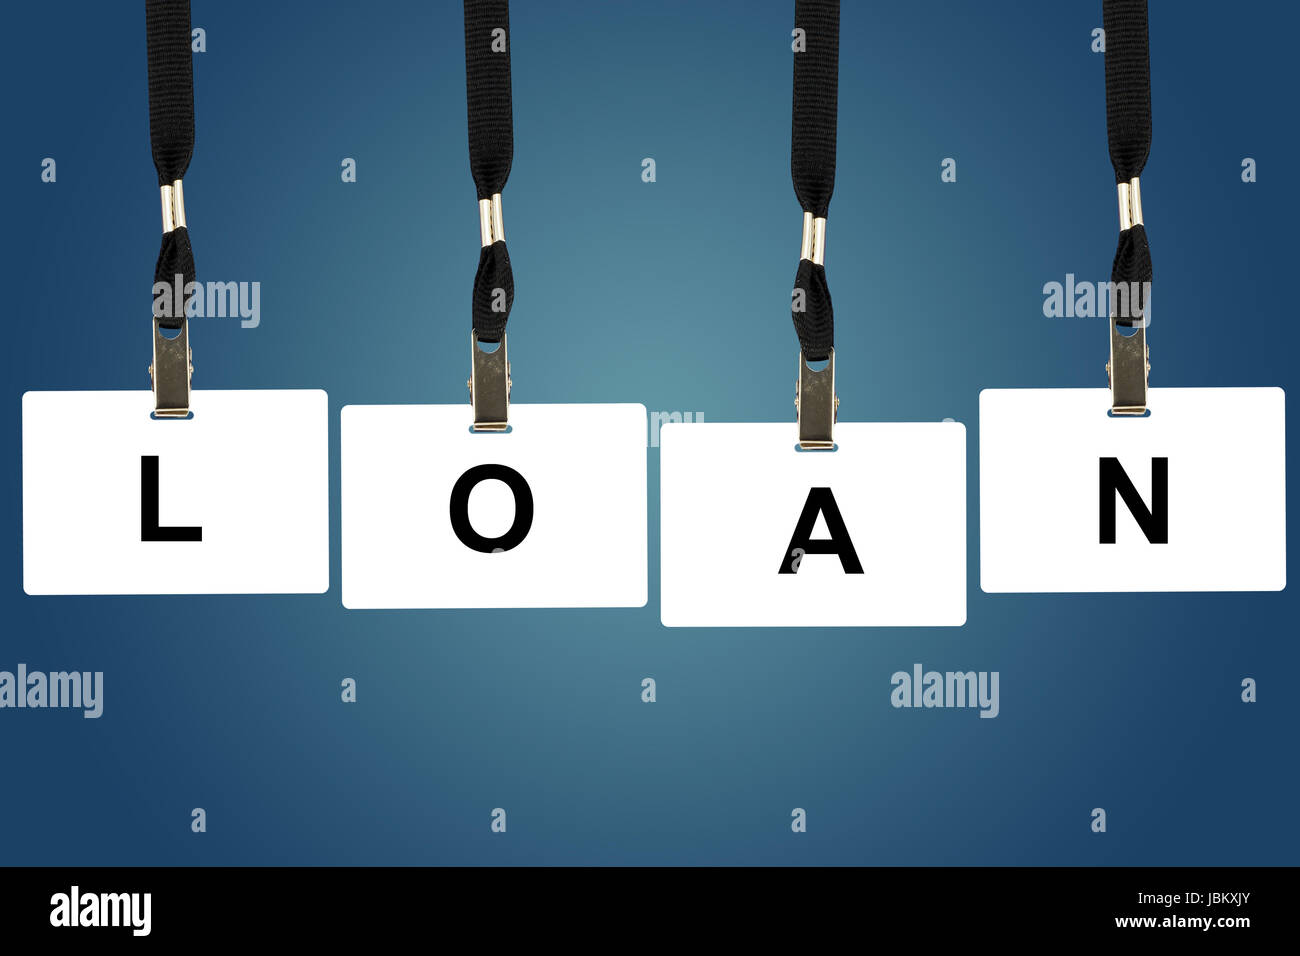 Loan word on badge with blue background - Stock Image